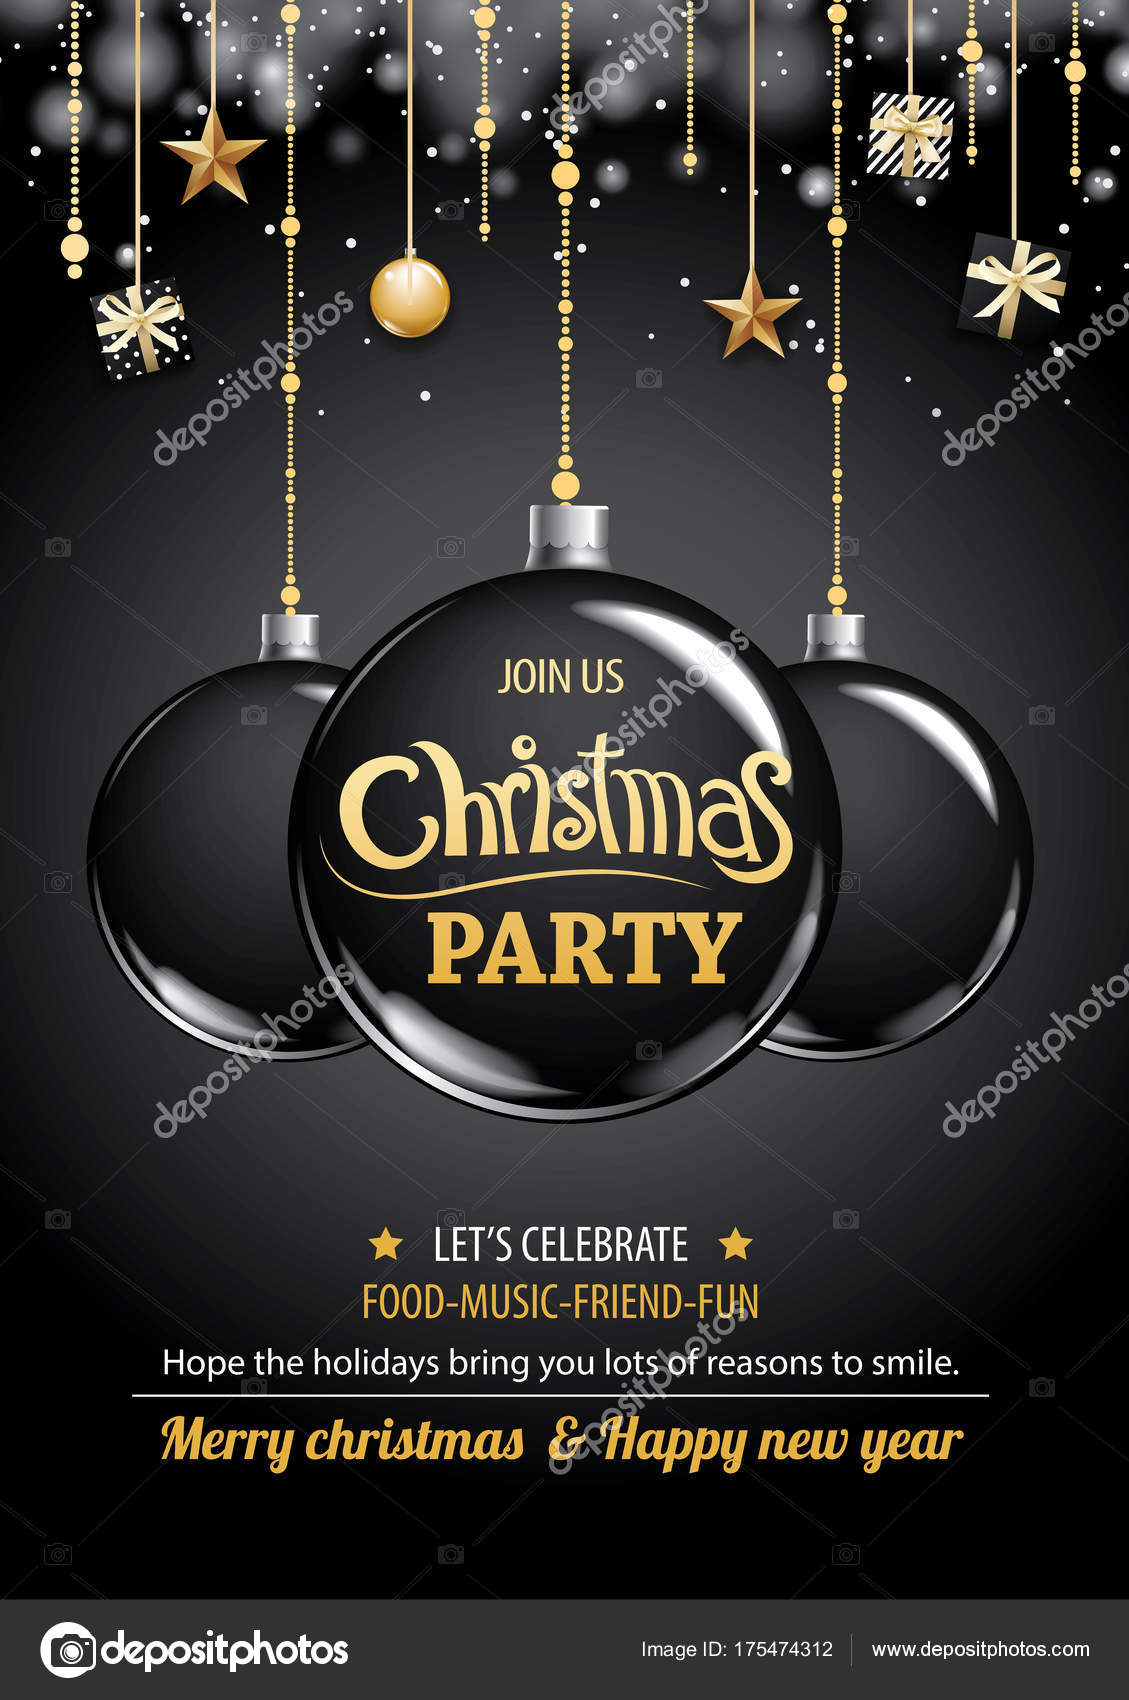 merry christmas party and ball on dark background invitation theme concept happy holiday greeting banner and card design template vector by kaisorn4